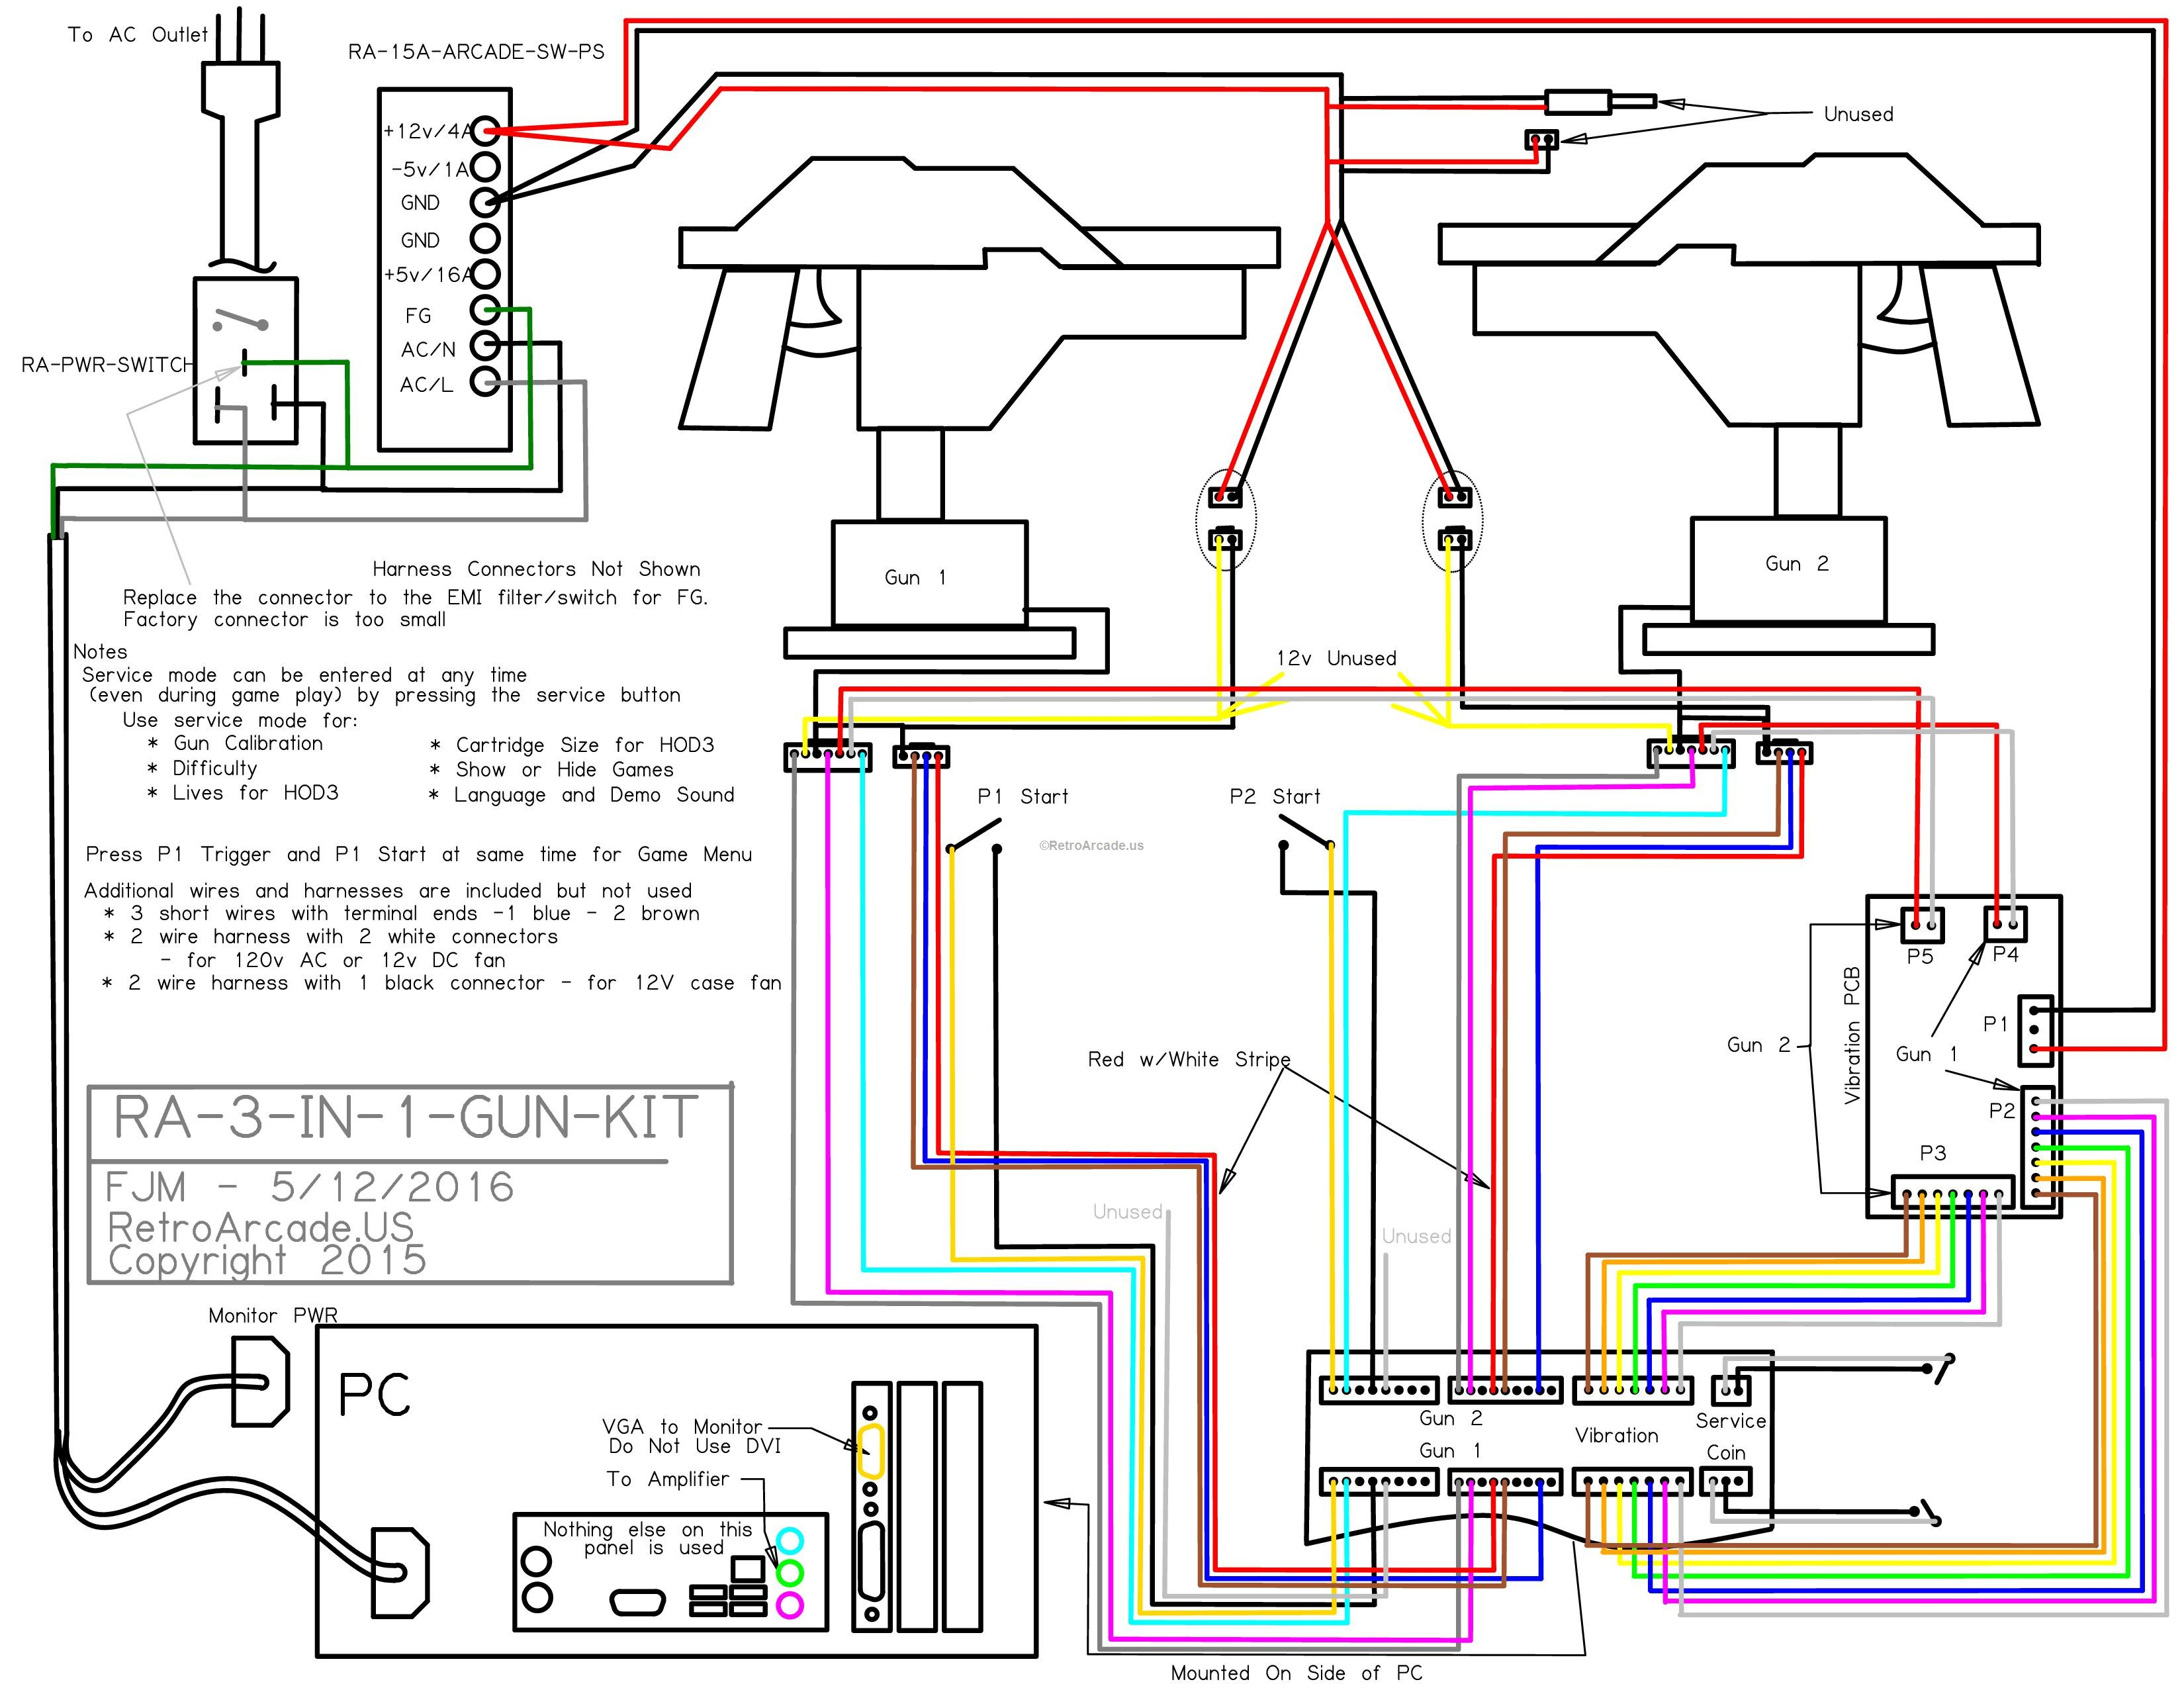 Usb Jamma Wiring Diagram on usb color diagram, usb cable, usb strip, usb wire connections, usb splitter diagram, usb schematic diagram, usb computer diagram, usb connectors diagram, usb charging diagram, usb outlets diagram, usb switch, usb pinout, usb wire schematic, usb motherboard diagram, usb block diagram, usb outlet adapter, usb soldering diagram, usb controller diagram, circuit diagram, usb socket diagram,